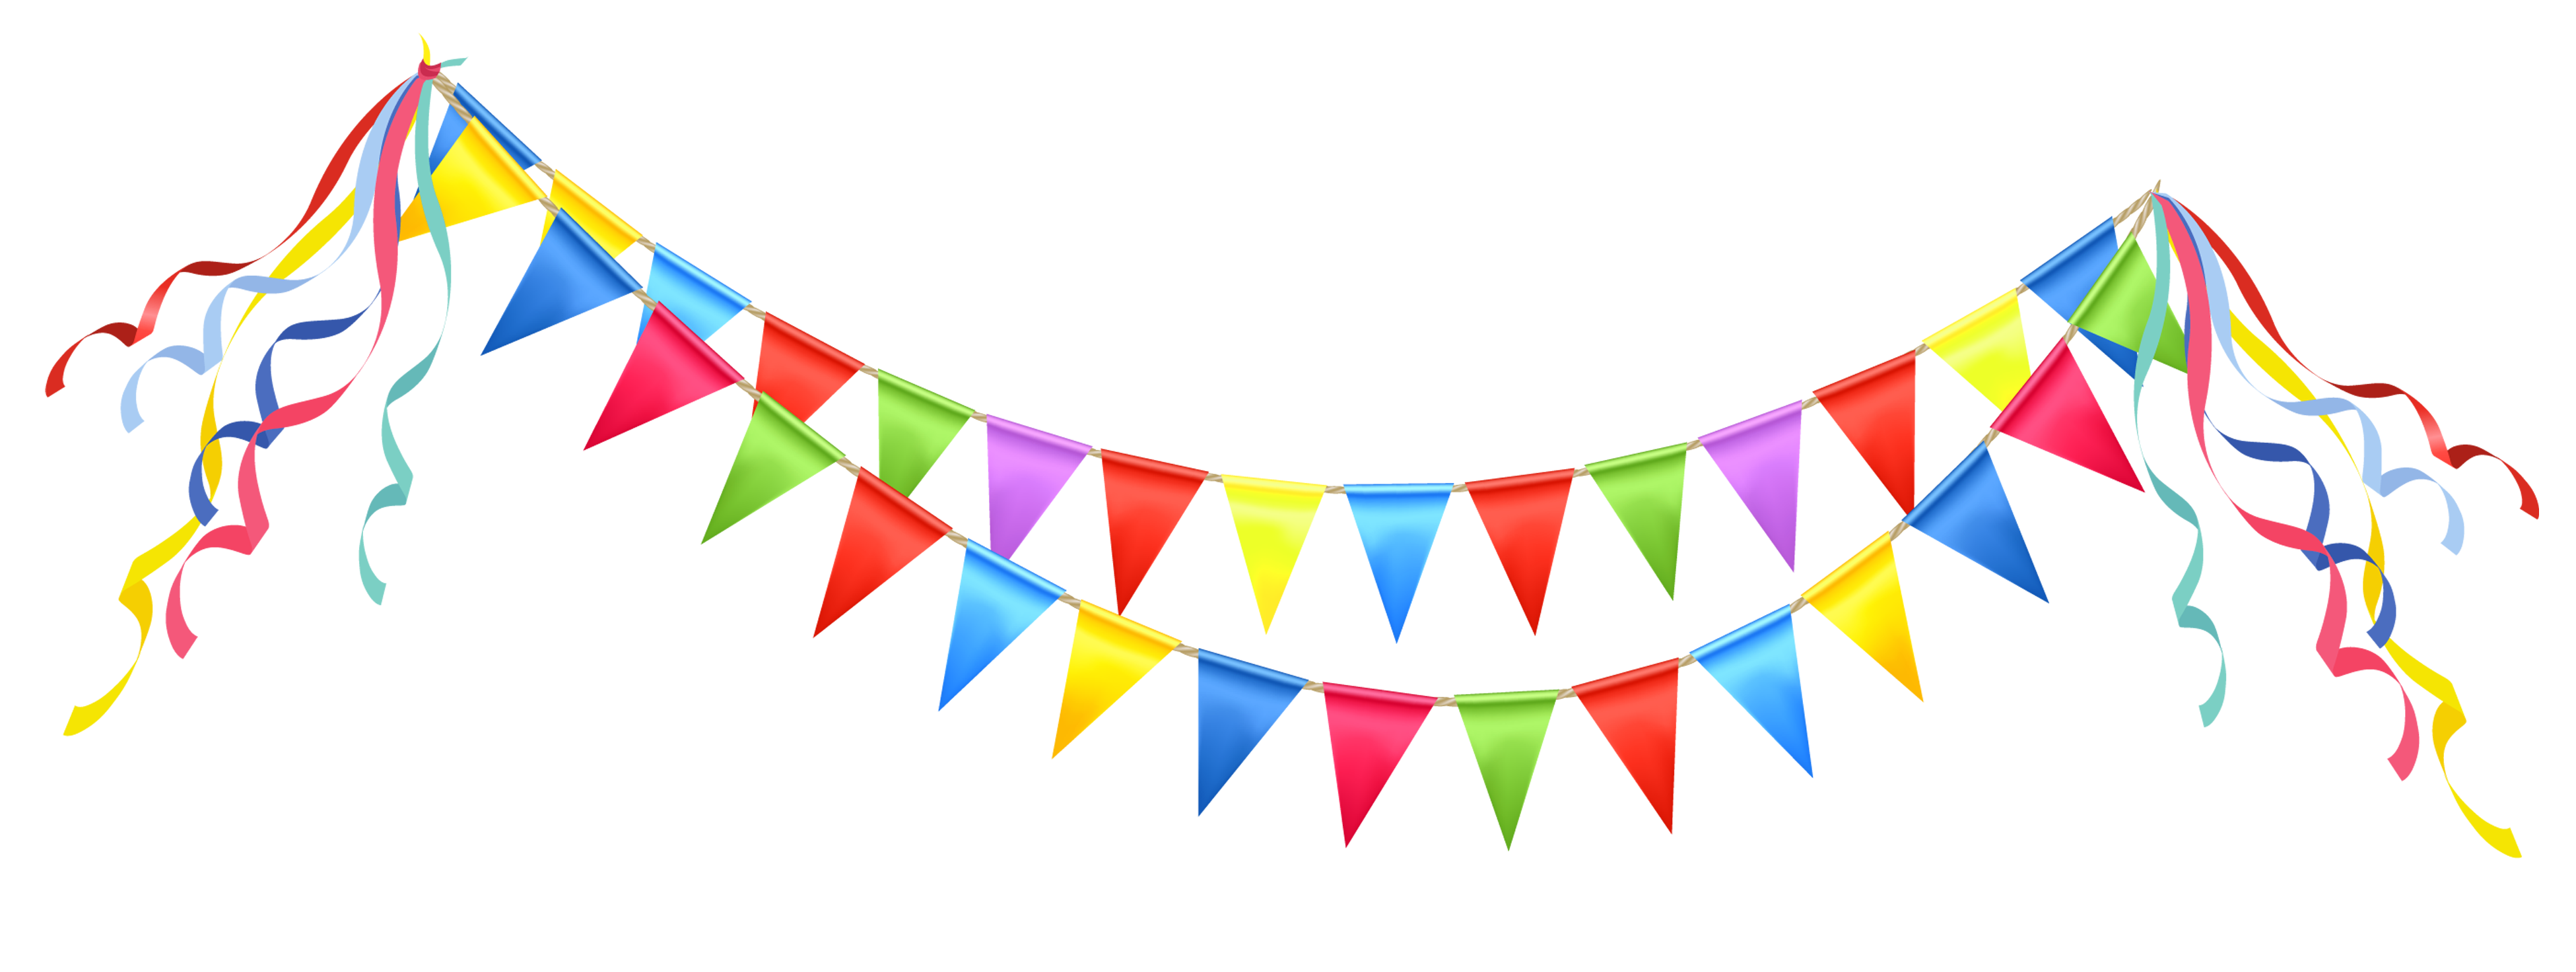 Streamers clipart birthday party. Parties free download clip